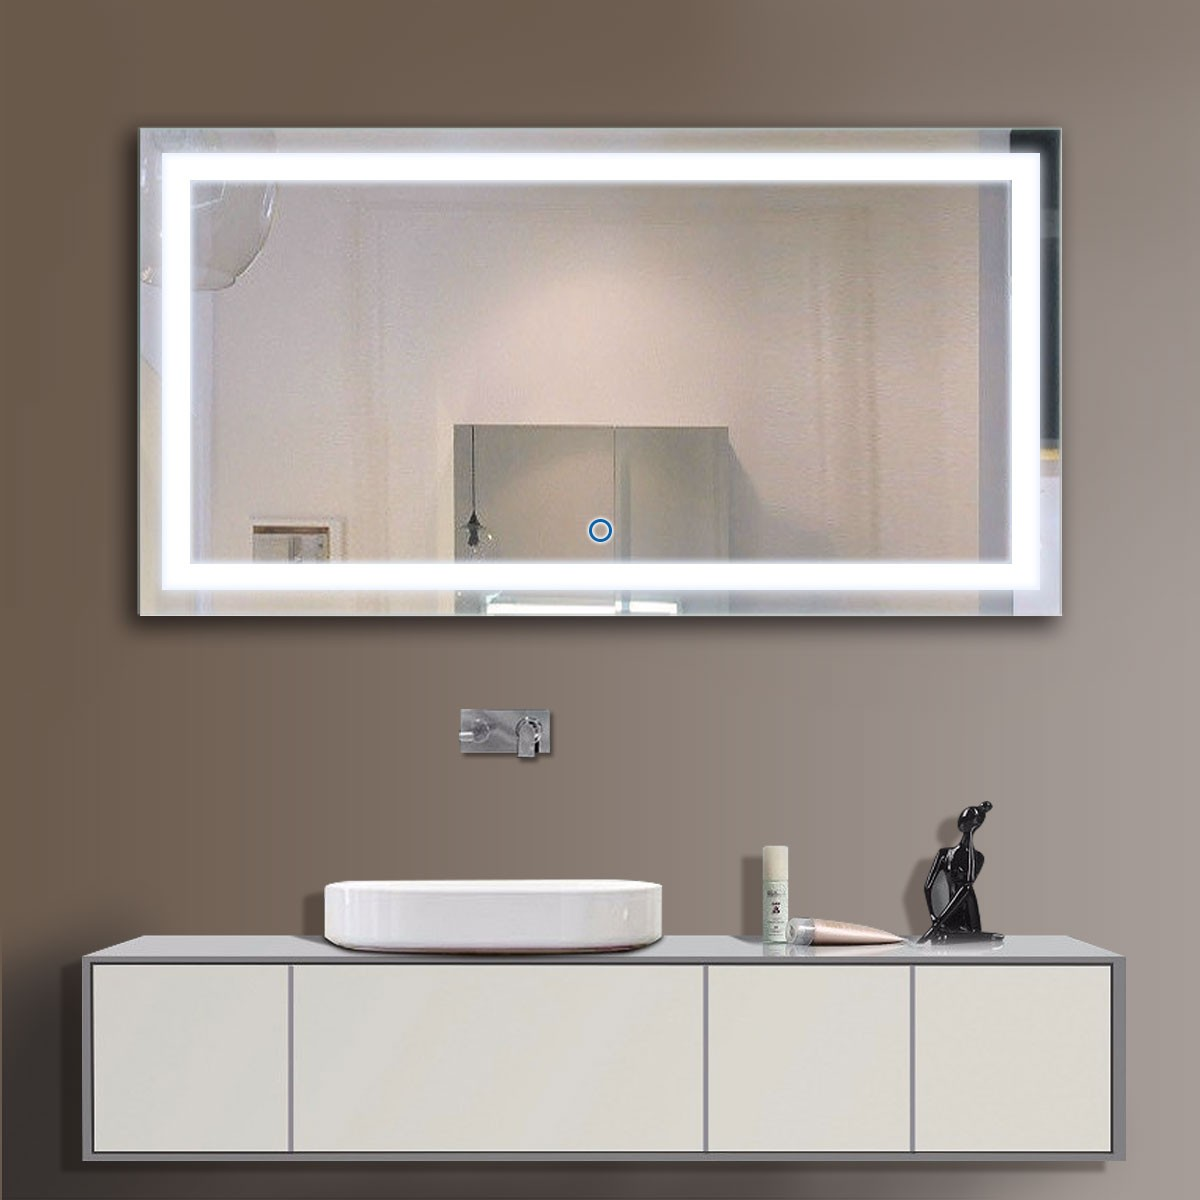 48 X 24 In Horizontal Led Bathroom Silvered Mirror With